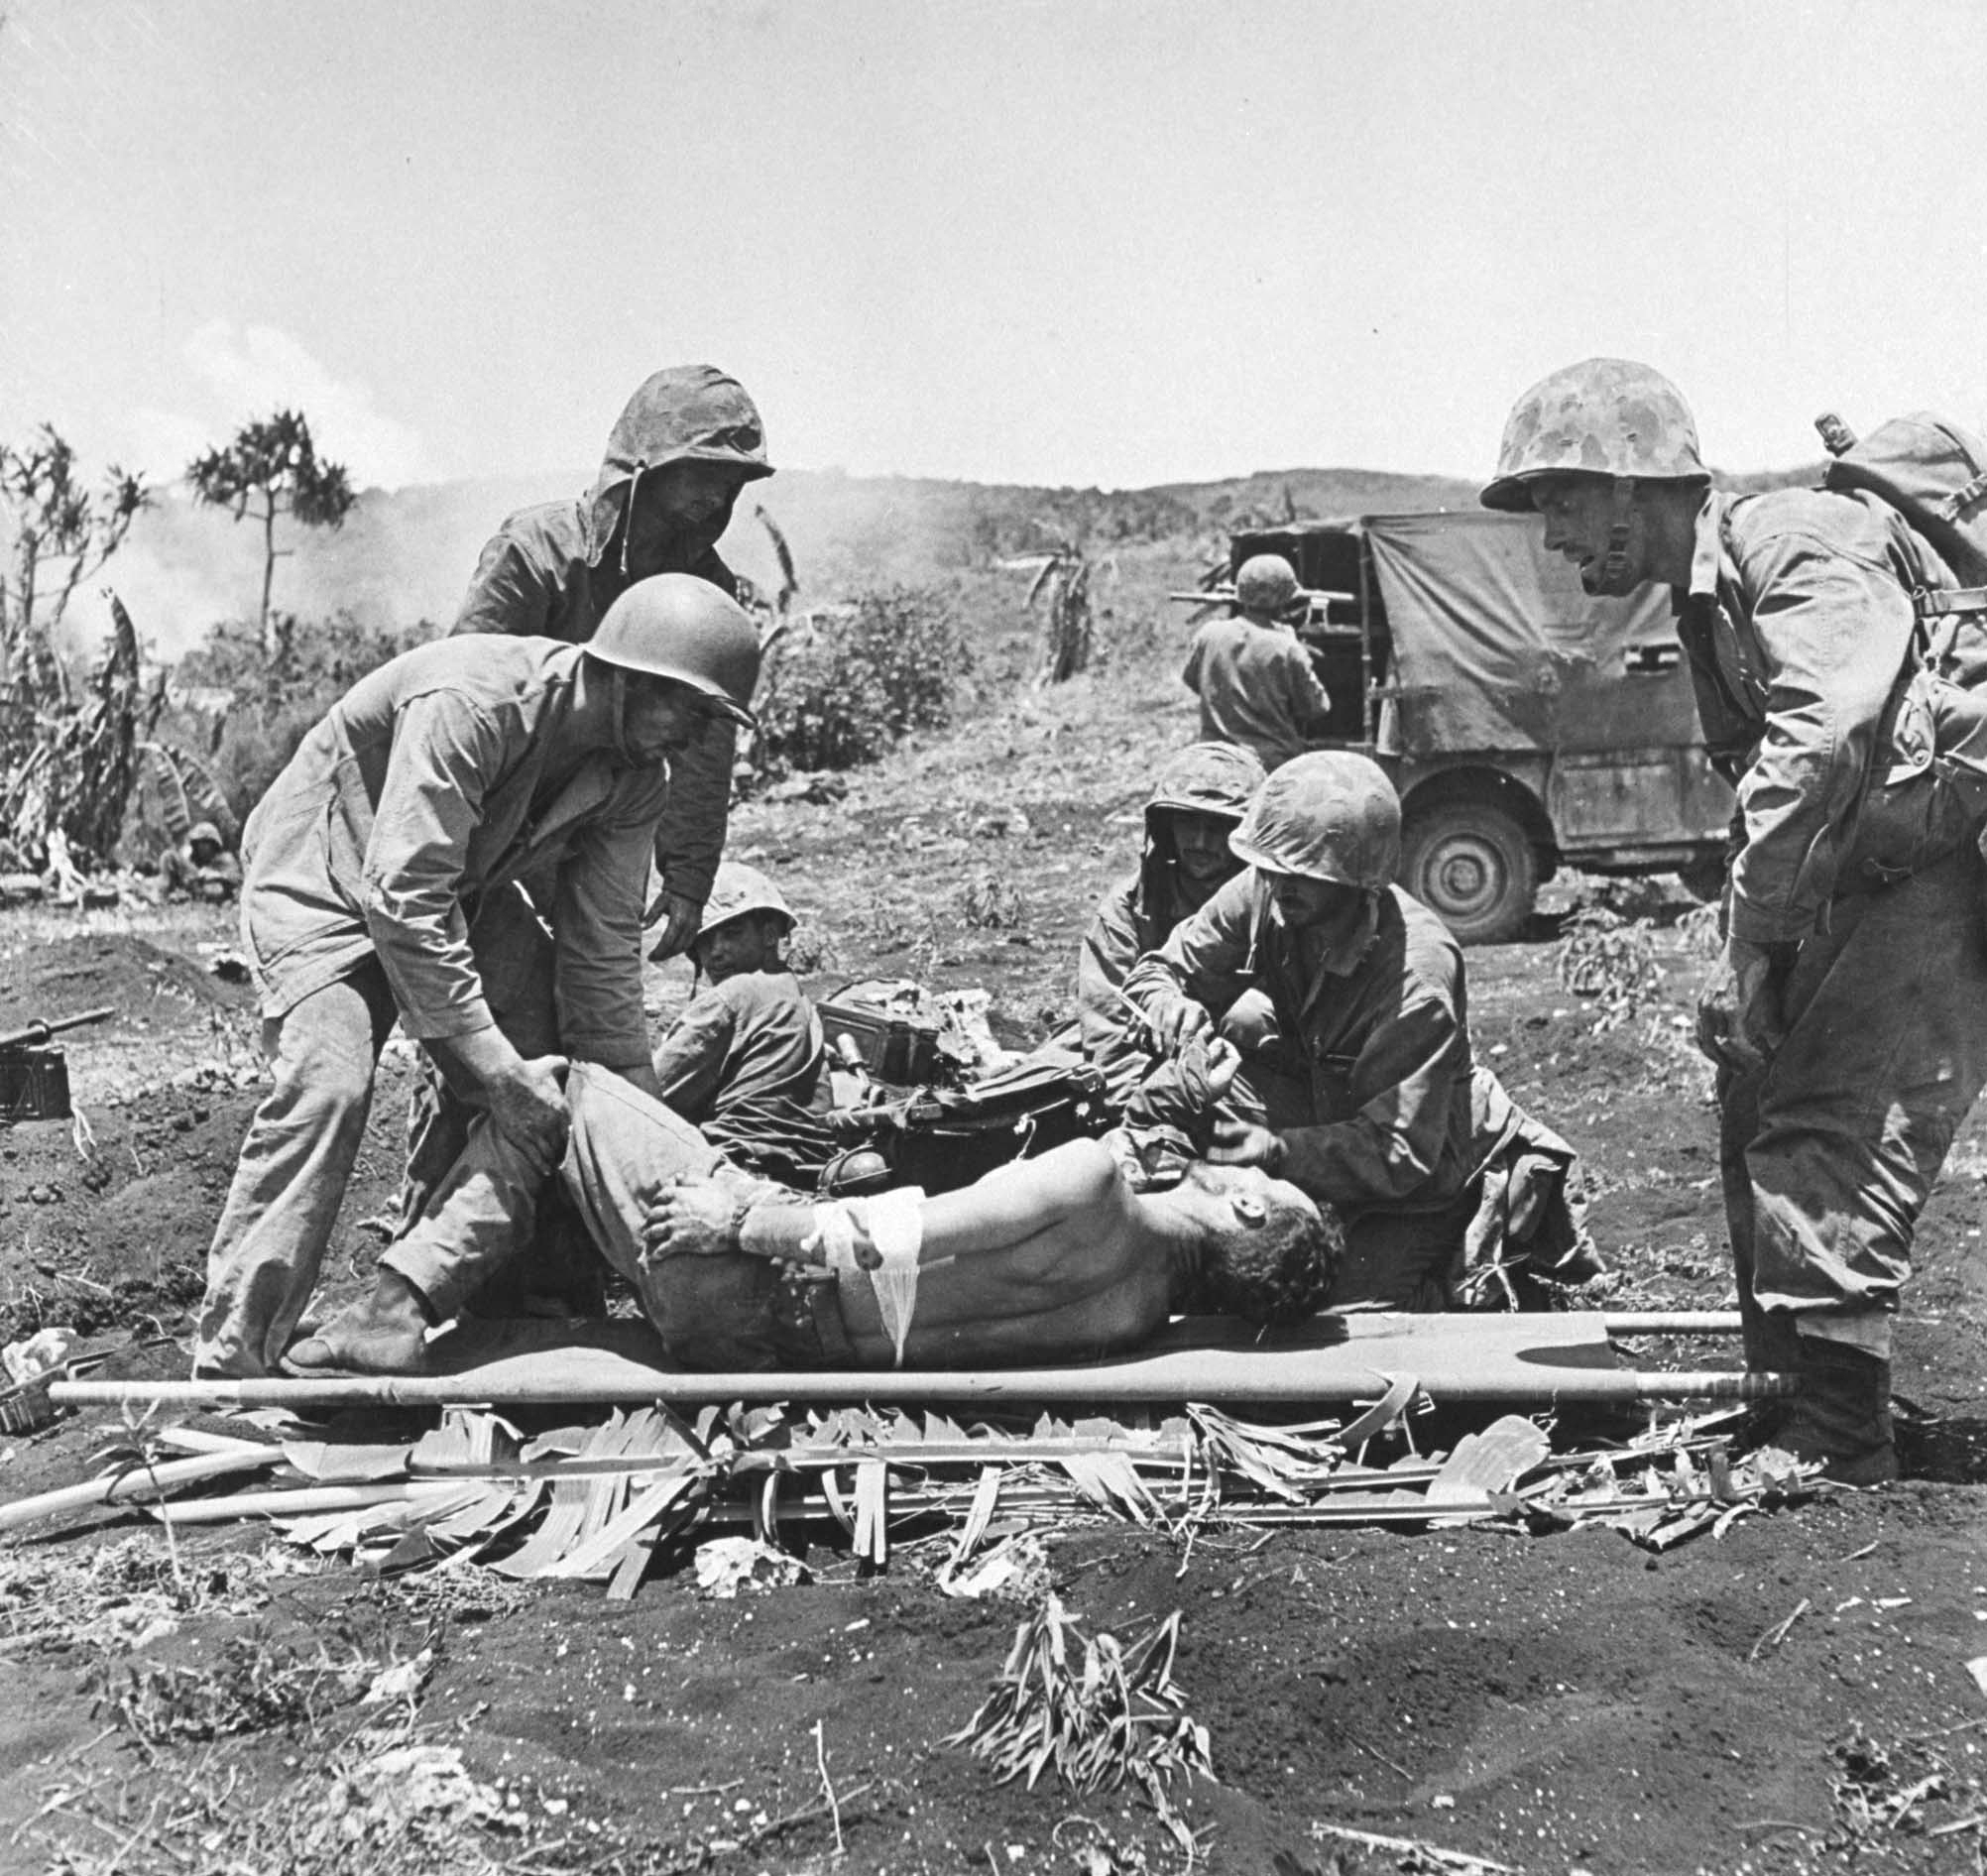 Marines tend to wounded comrades during the battle to take Saipan from the Japanese, 1944.